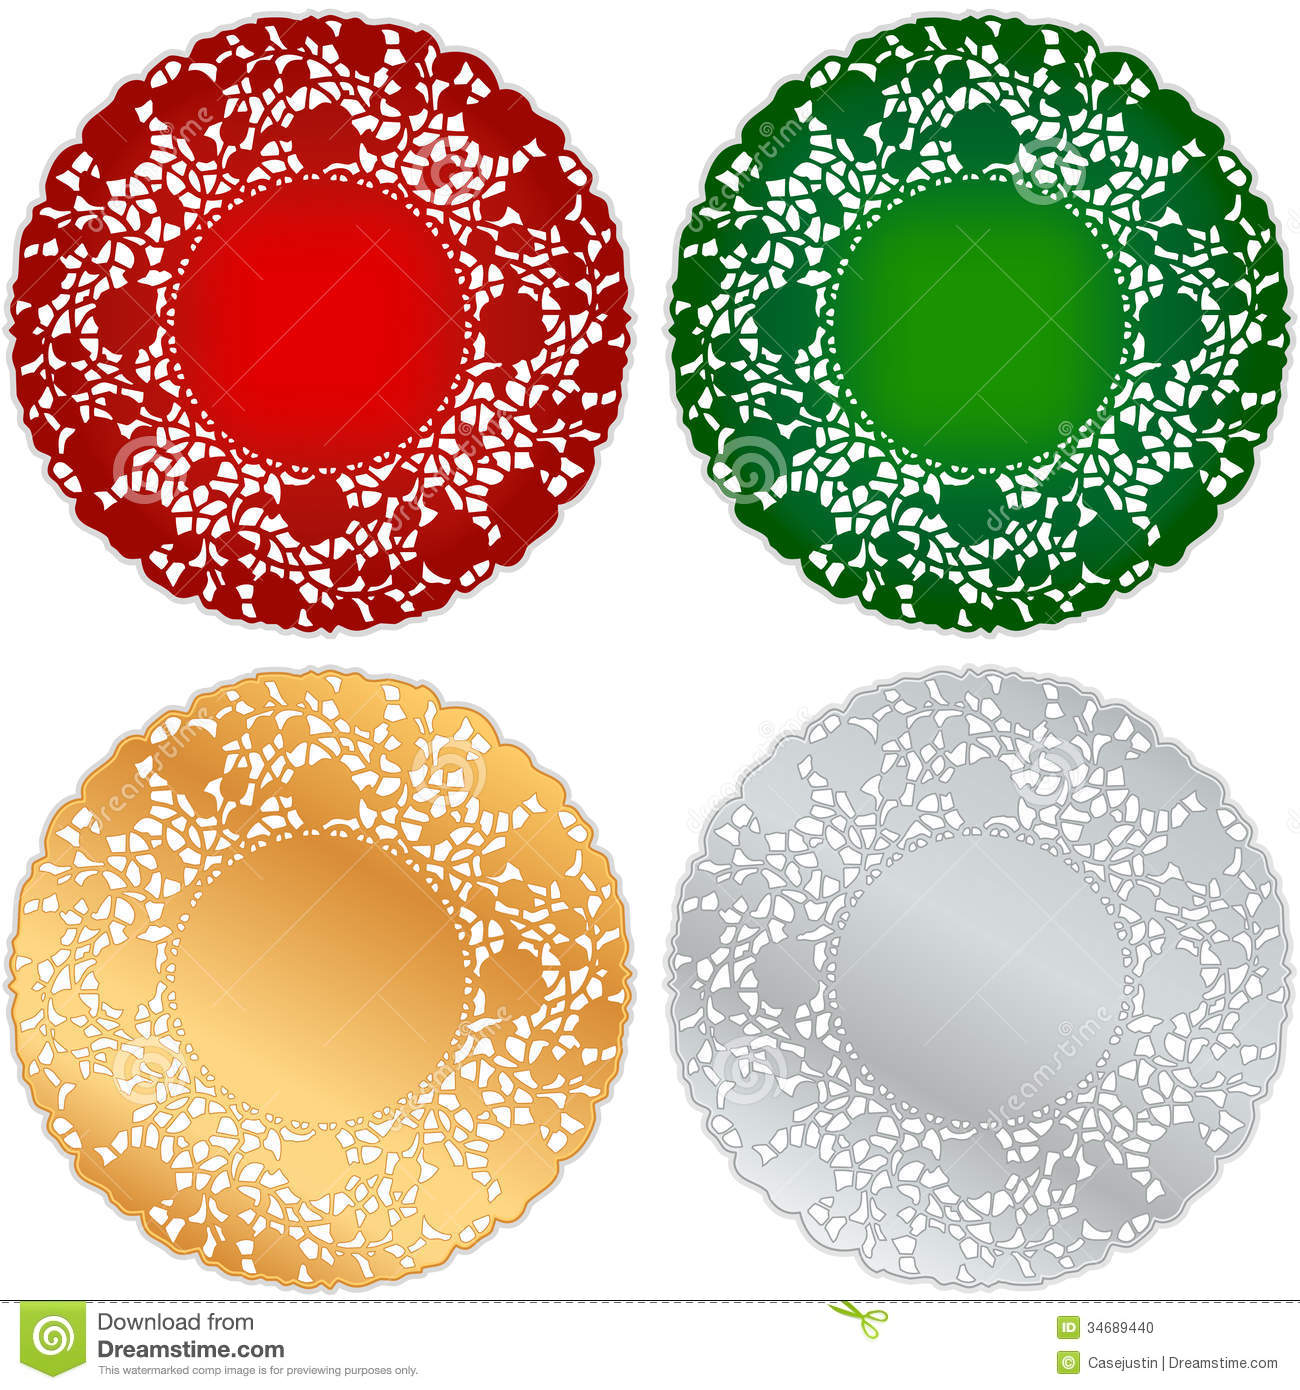 Christmas table decorations red and gold - Christmas Lace Doily Place Mats